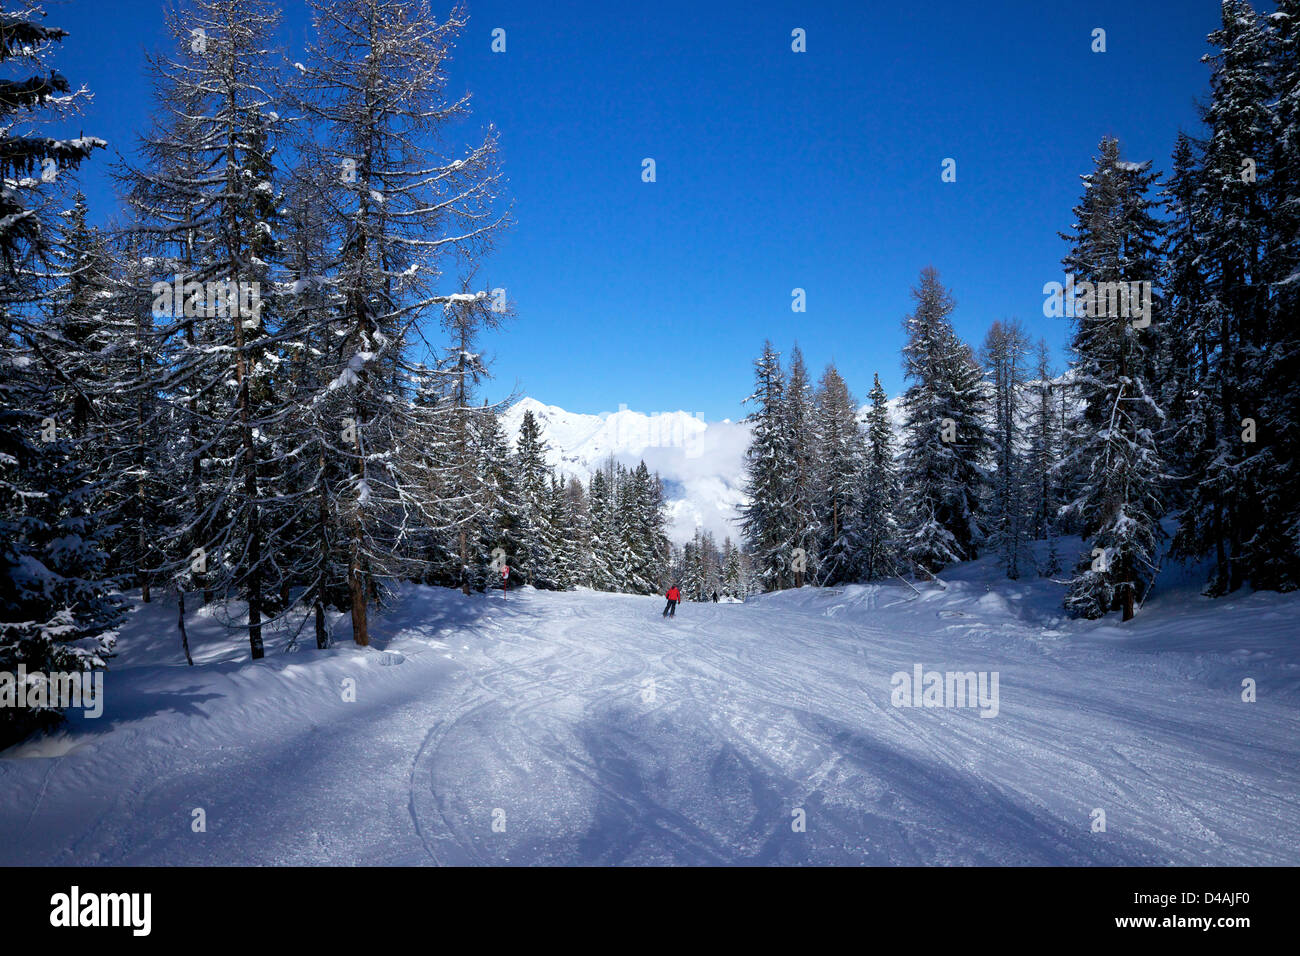 Early morning on the piste, Les Arcs, Savoie, France, Europe - Stock Image